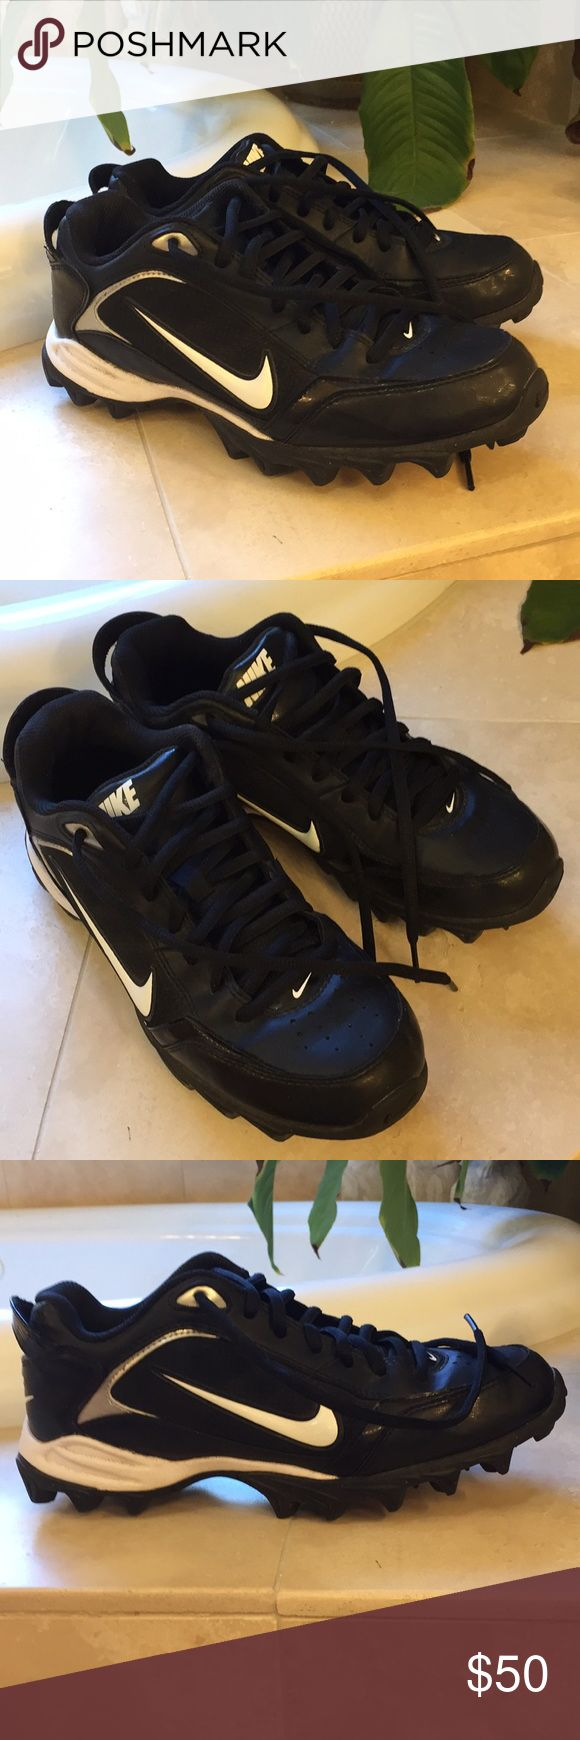 Nike Boys Land Shark Football Cleats Perfect condition! Worn once for team photos. Like new. Nike Shoes